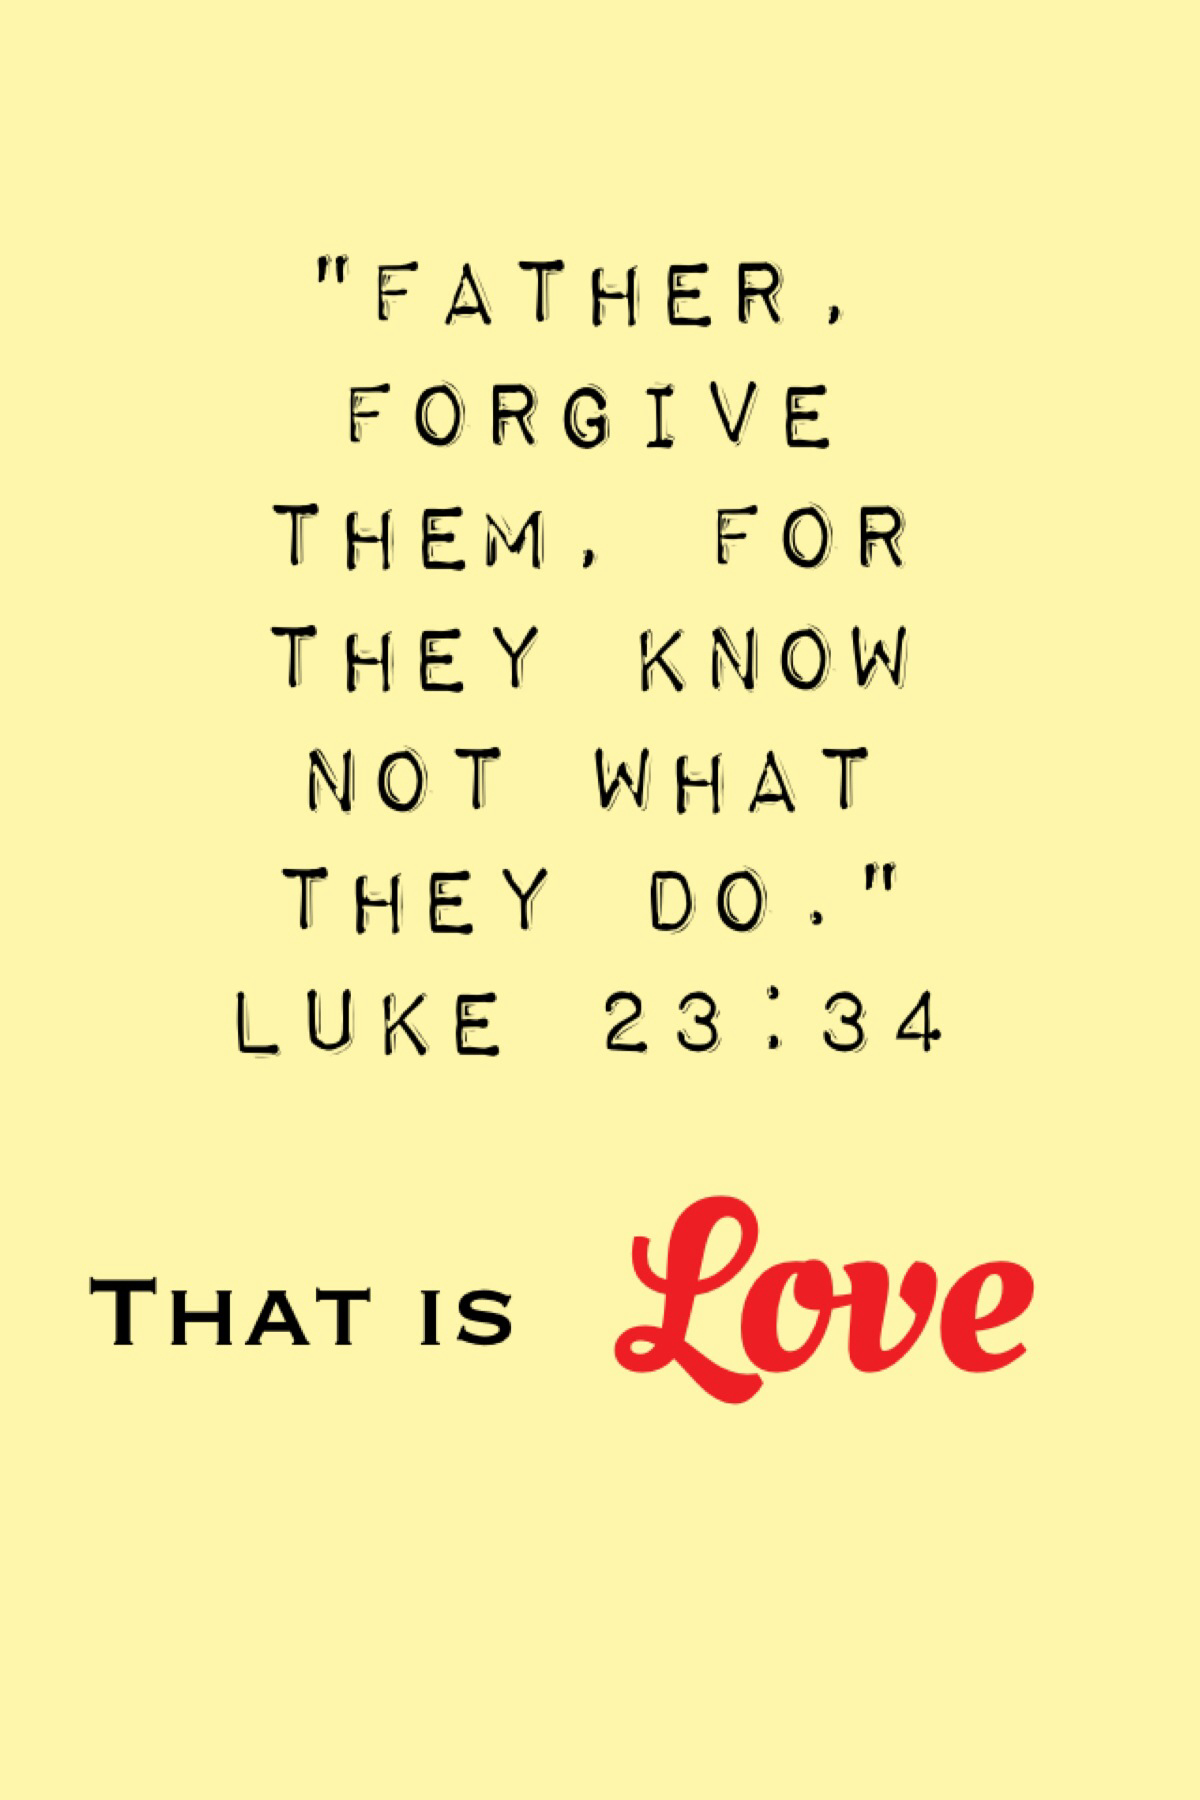 father forgive them luke 23:34 lutheran indian ministries